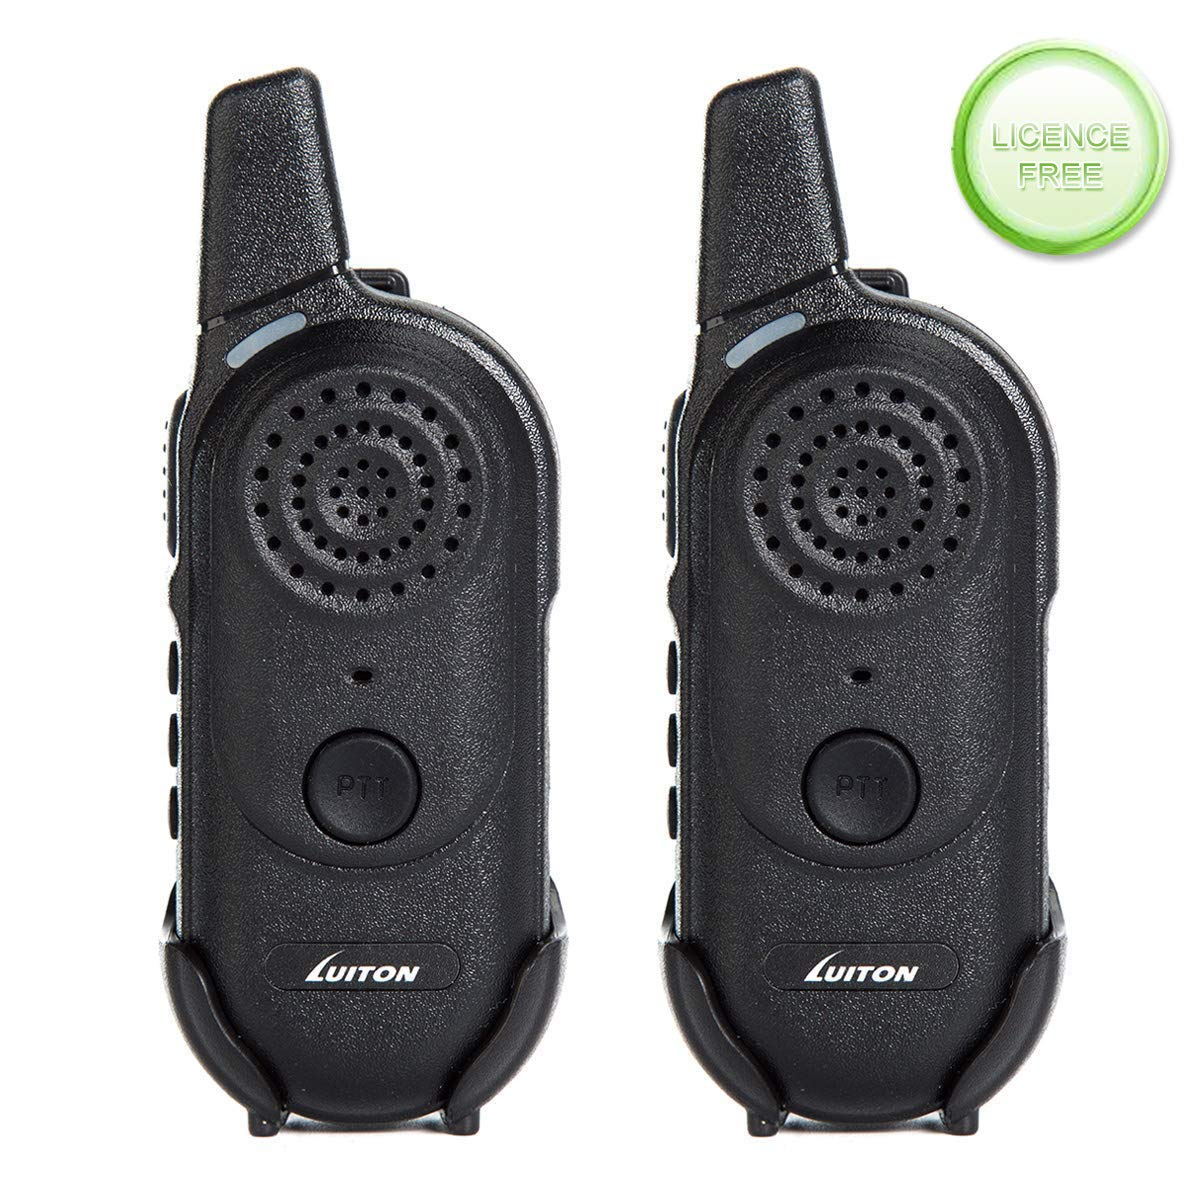 Kids Walkie Talkies,Rechargable Mini Walky Outdoor Toys - Best Gifts for Boys Girls Birthday UHF FRS/Gmrs Two Way Radio 16 Channels Outdoor Camping Long Range 3 Miles Licence Free (Pair) by LUITON